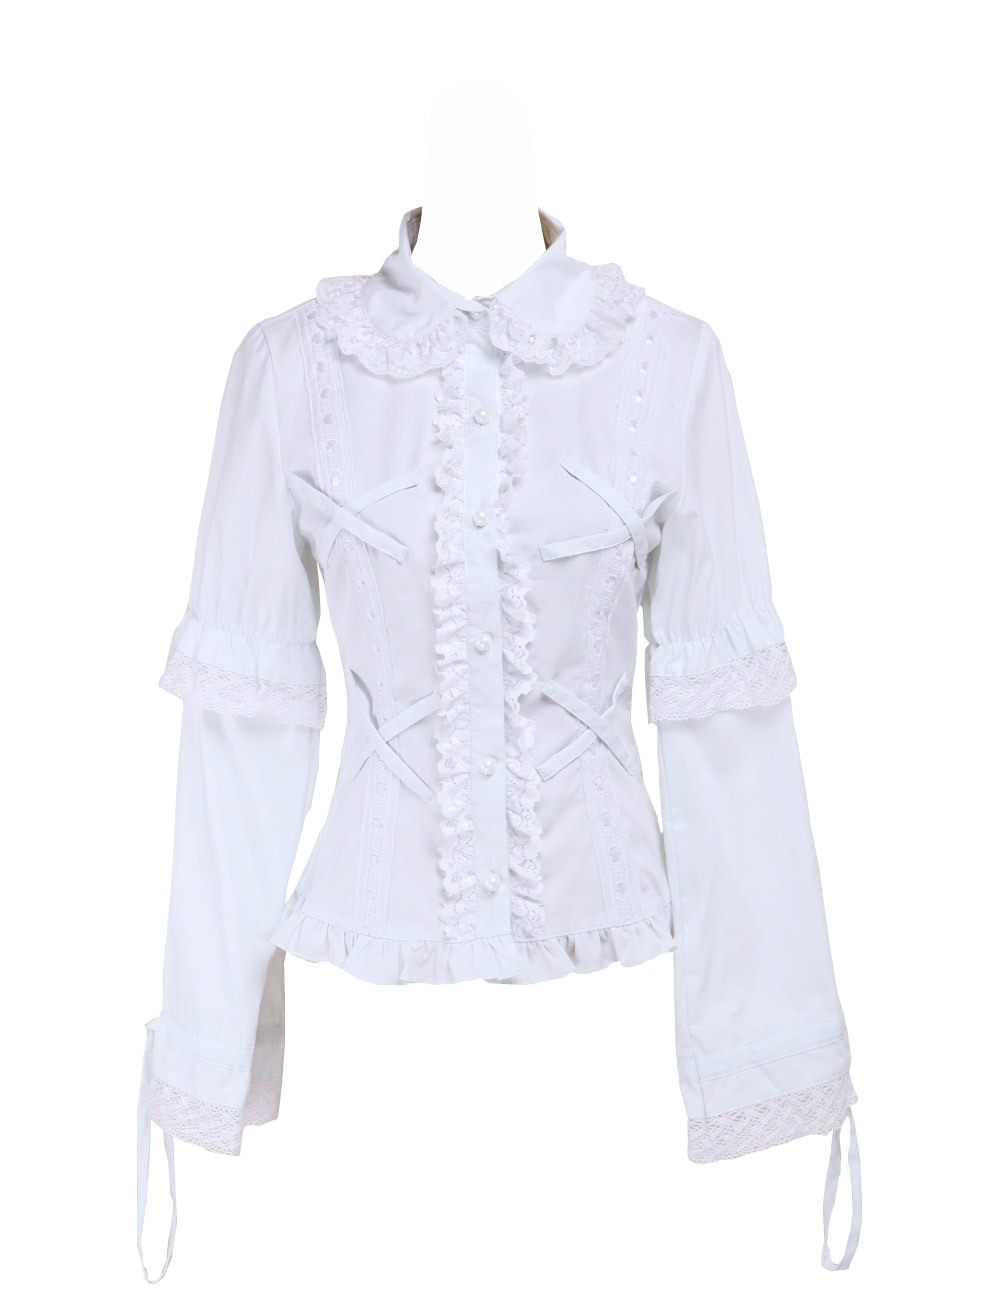 White Cotton Lapel Lace Ruffle Retro Victorian Lolita Shirt Blouse - $38.98